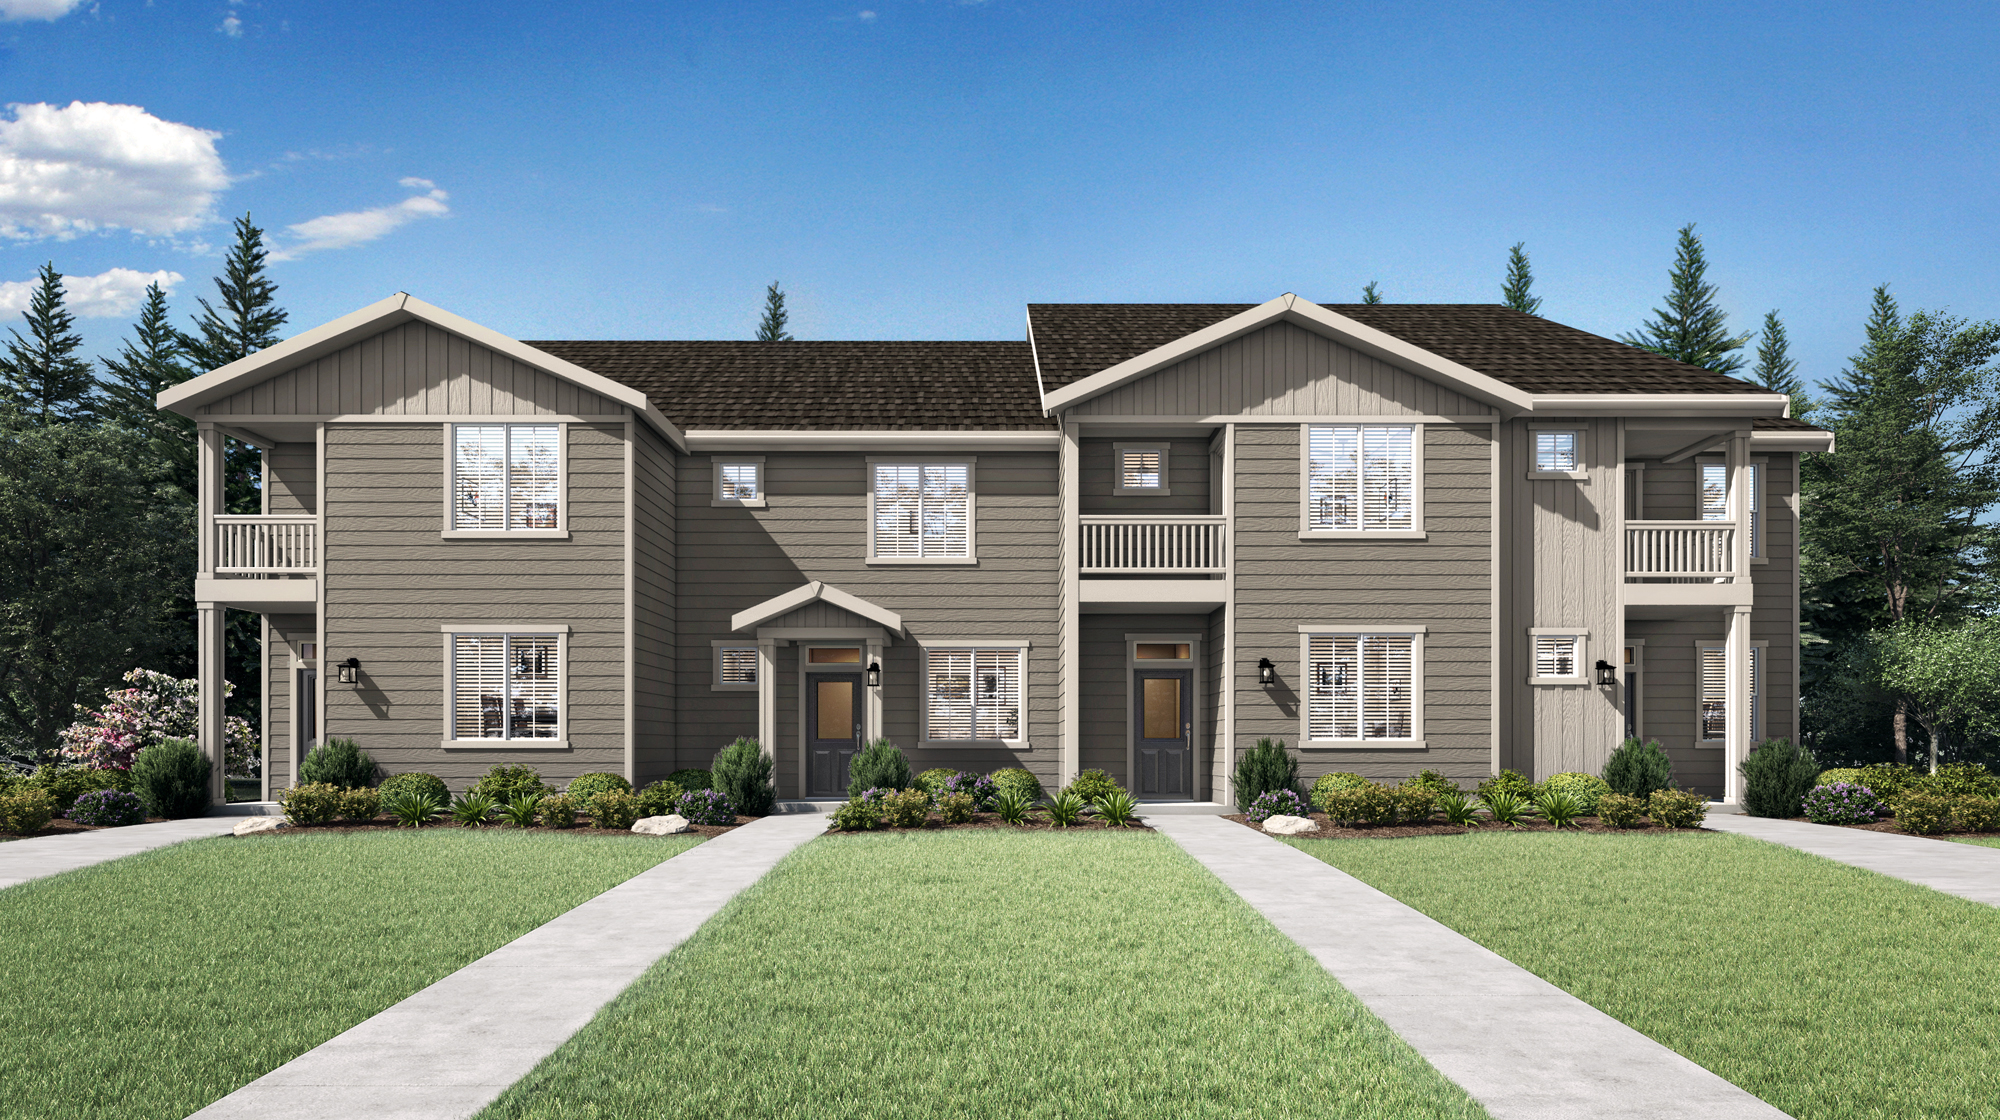 Portland Area Townhomes by LGI Homes at 5th Plain Creek Station.